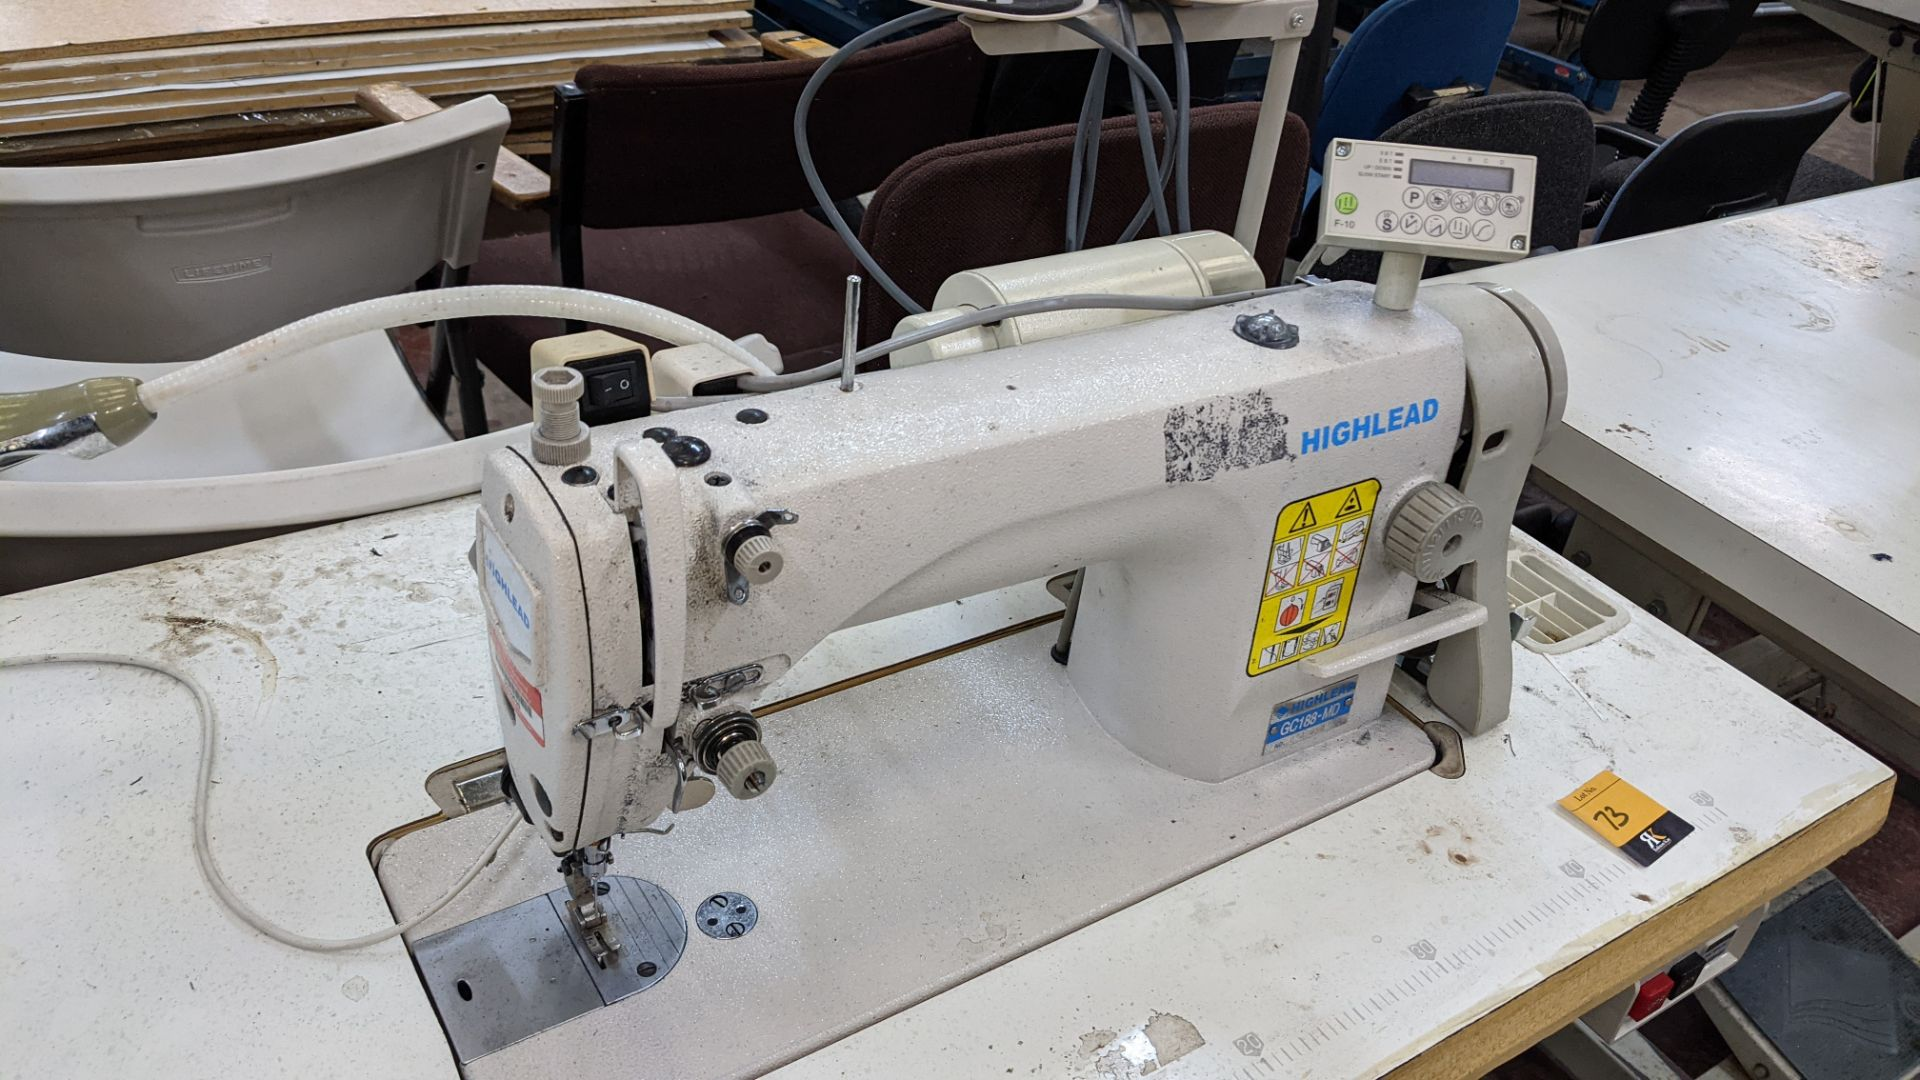 Highlead model GC188-MD sewing machine with model F-10 digital controller - Image 8 of 16